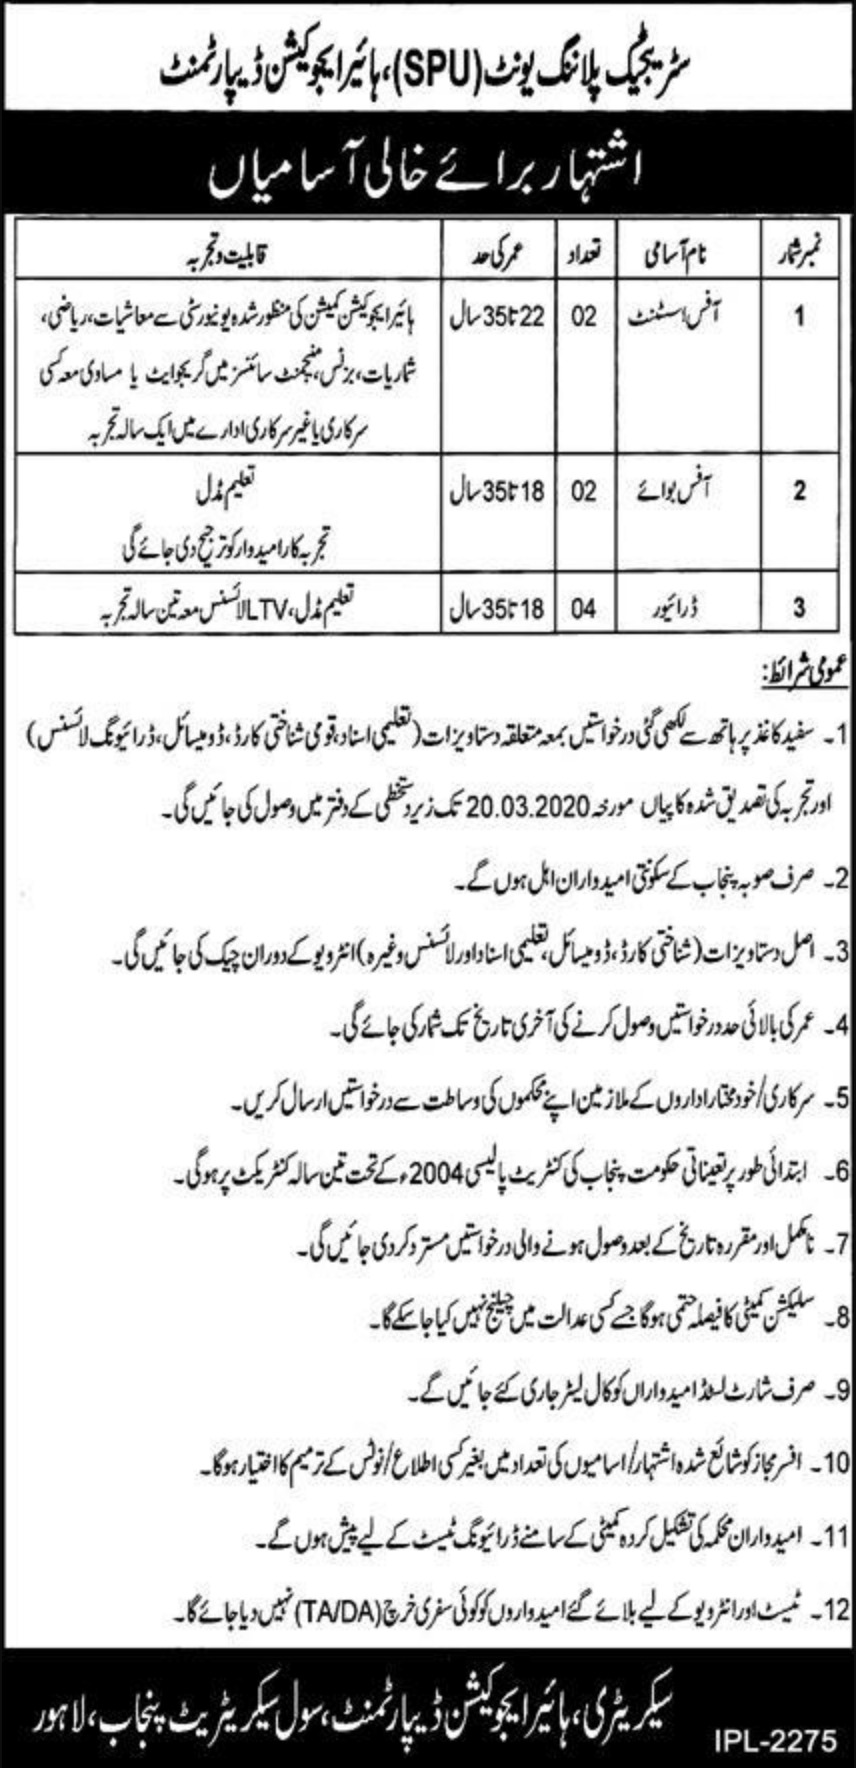 Higher Education Department Punjab SPU Jobs 2020